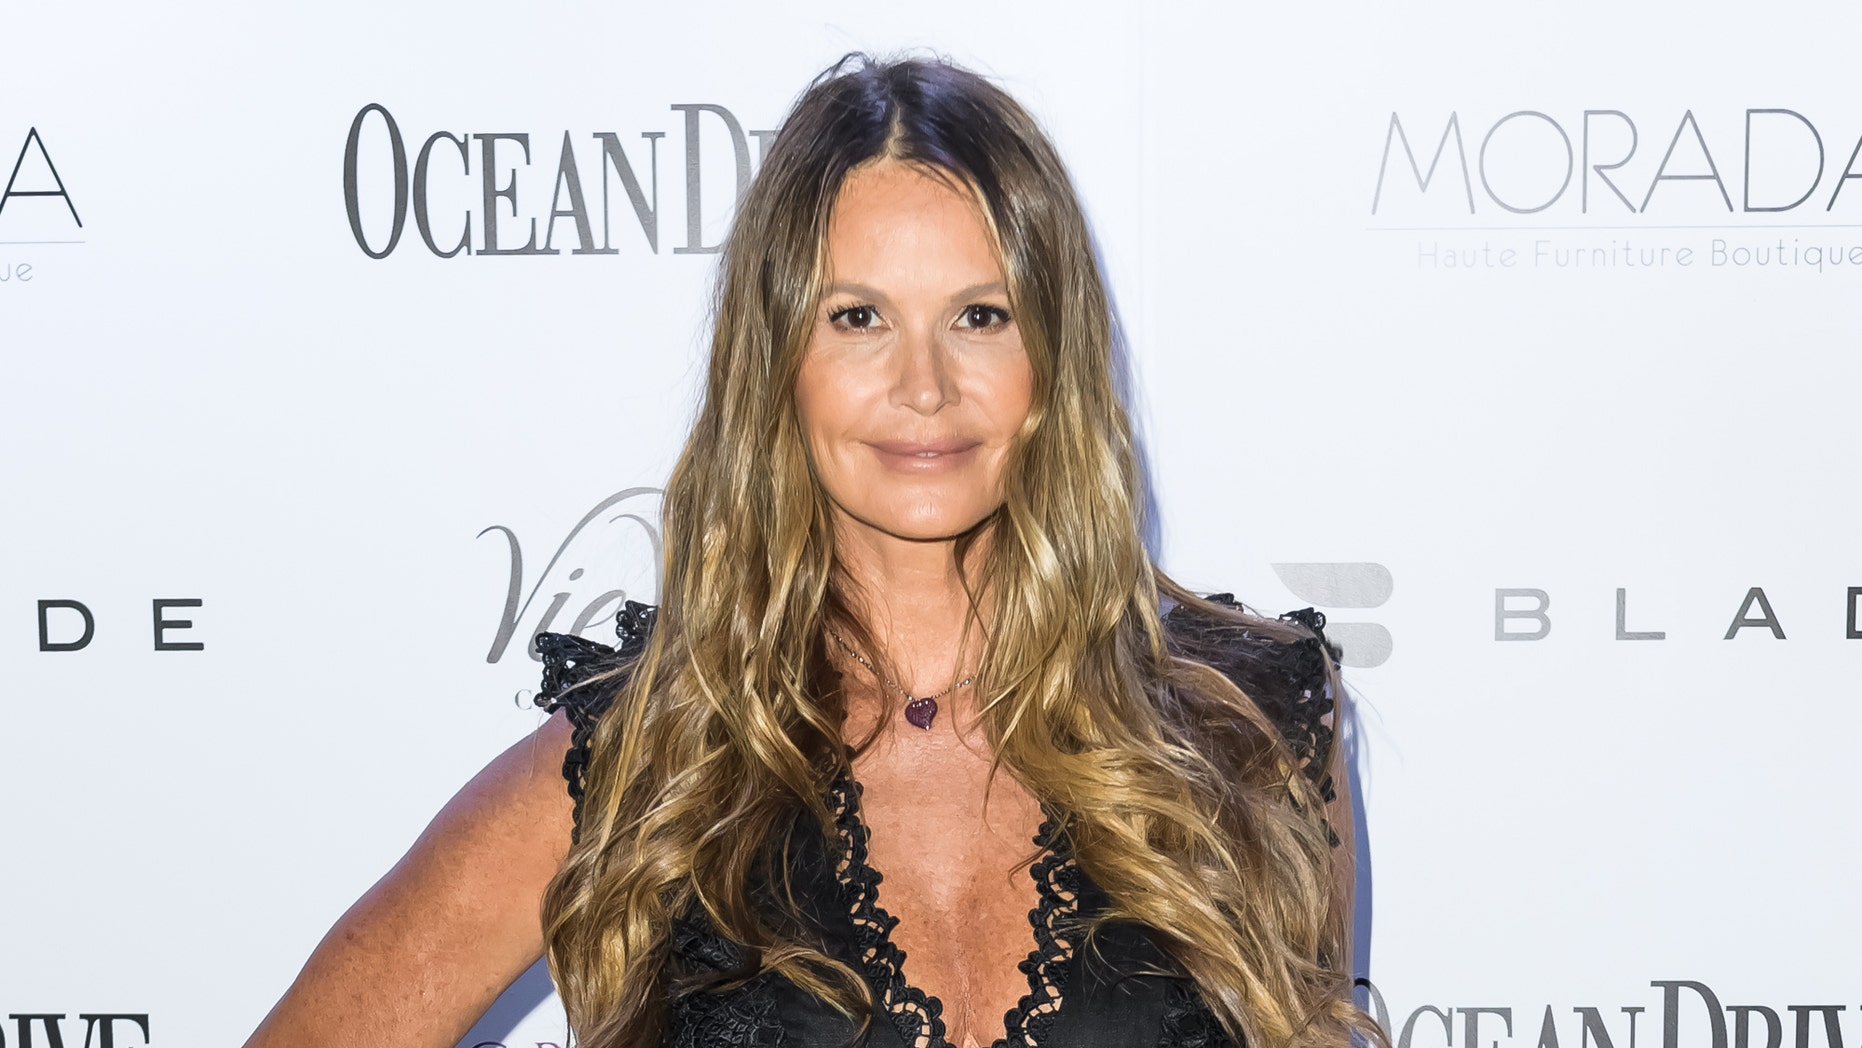 Elle Macpherson was recently spotted hard at work on a photo shoot in Sydney, Australia.